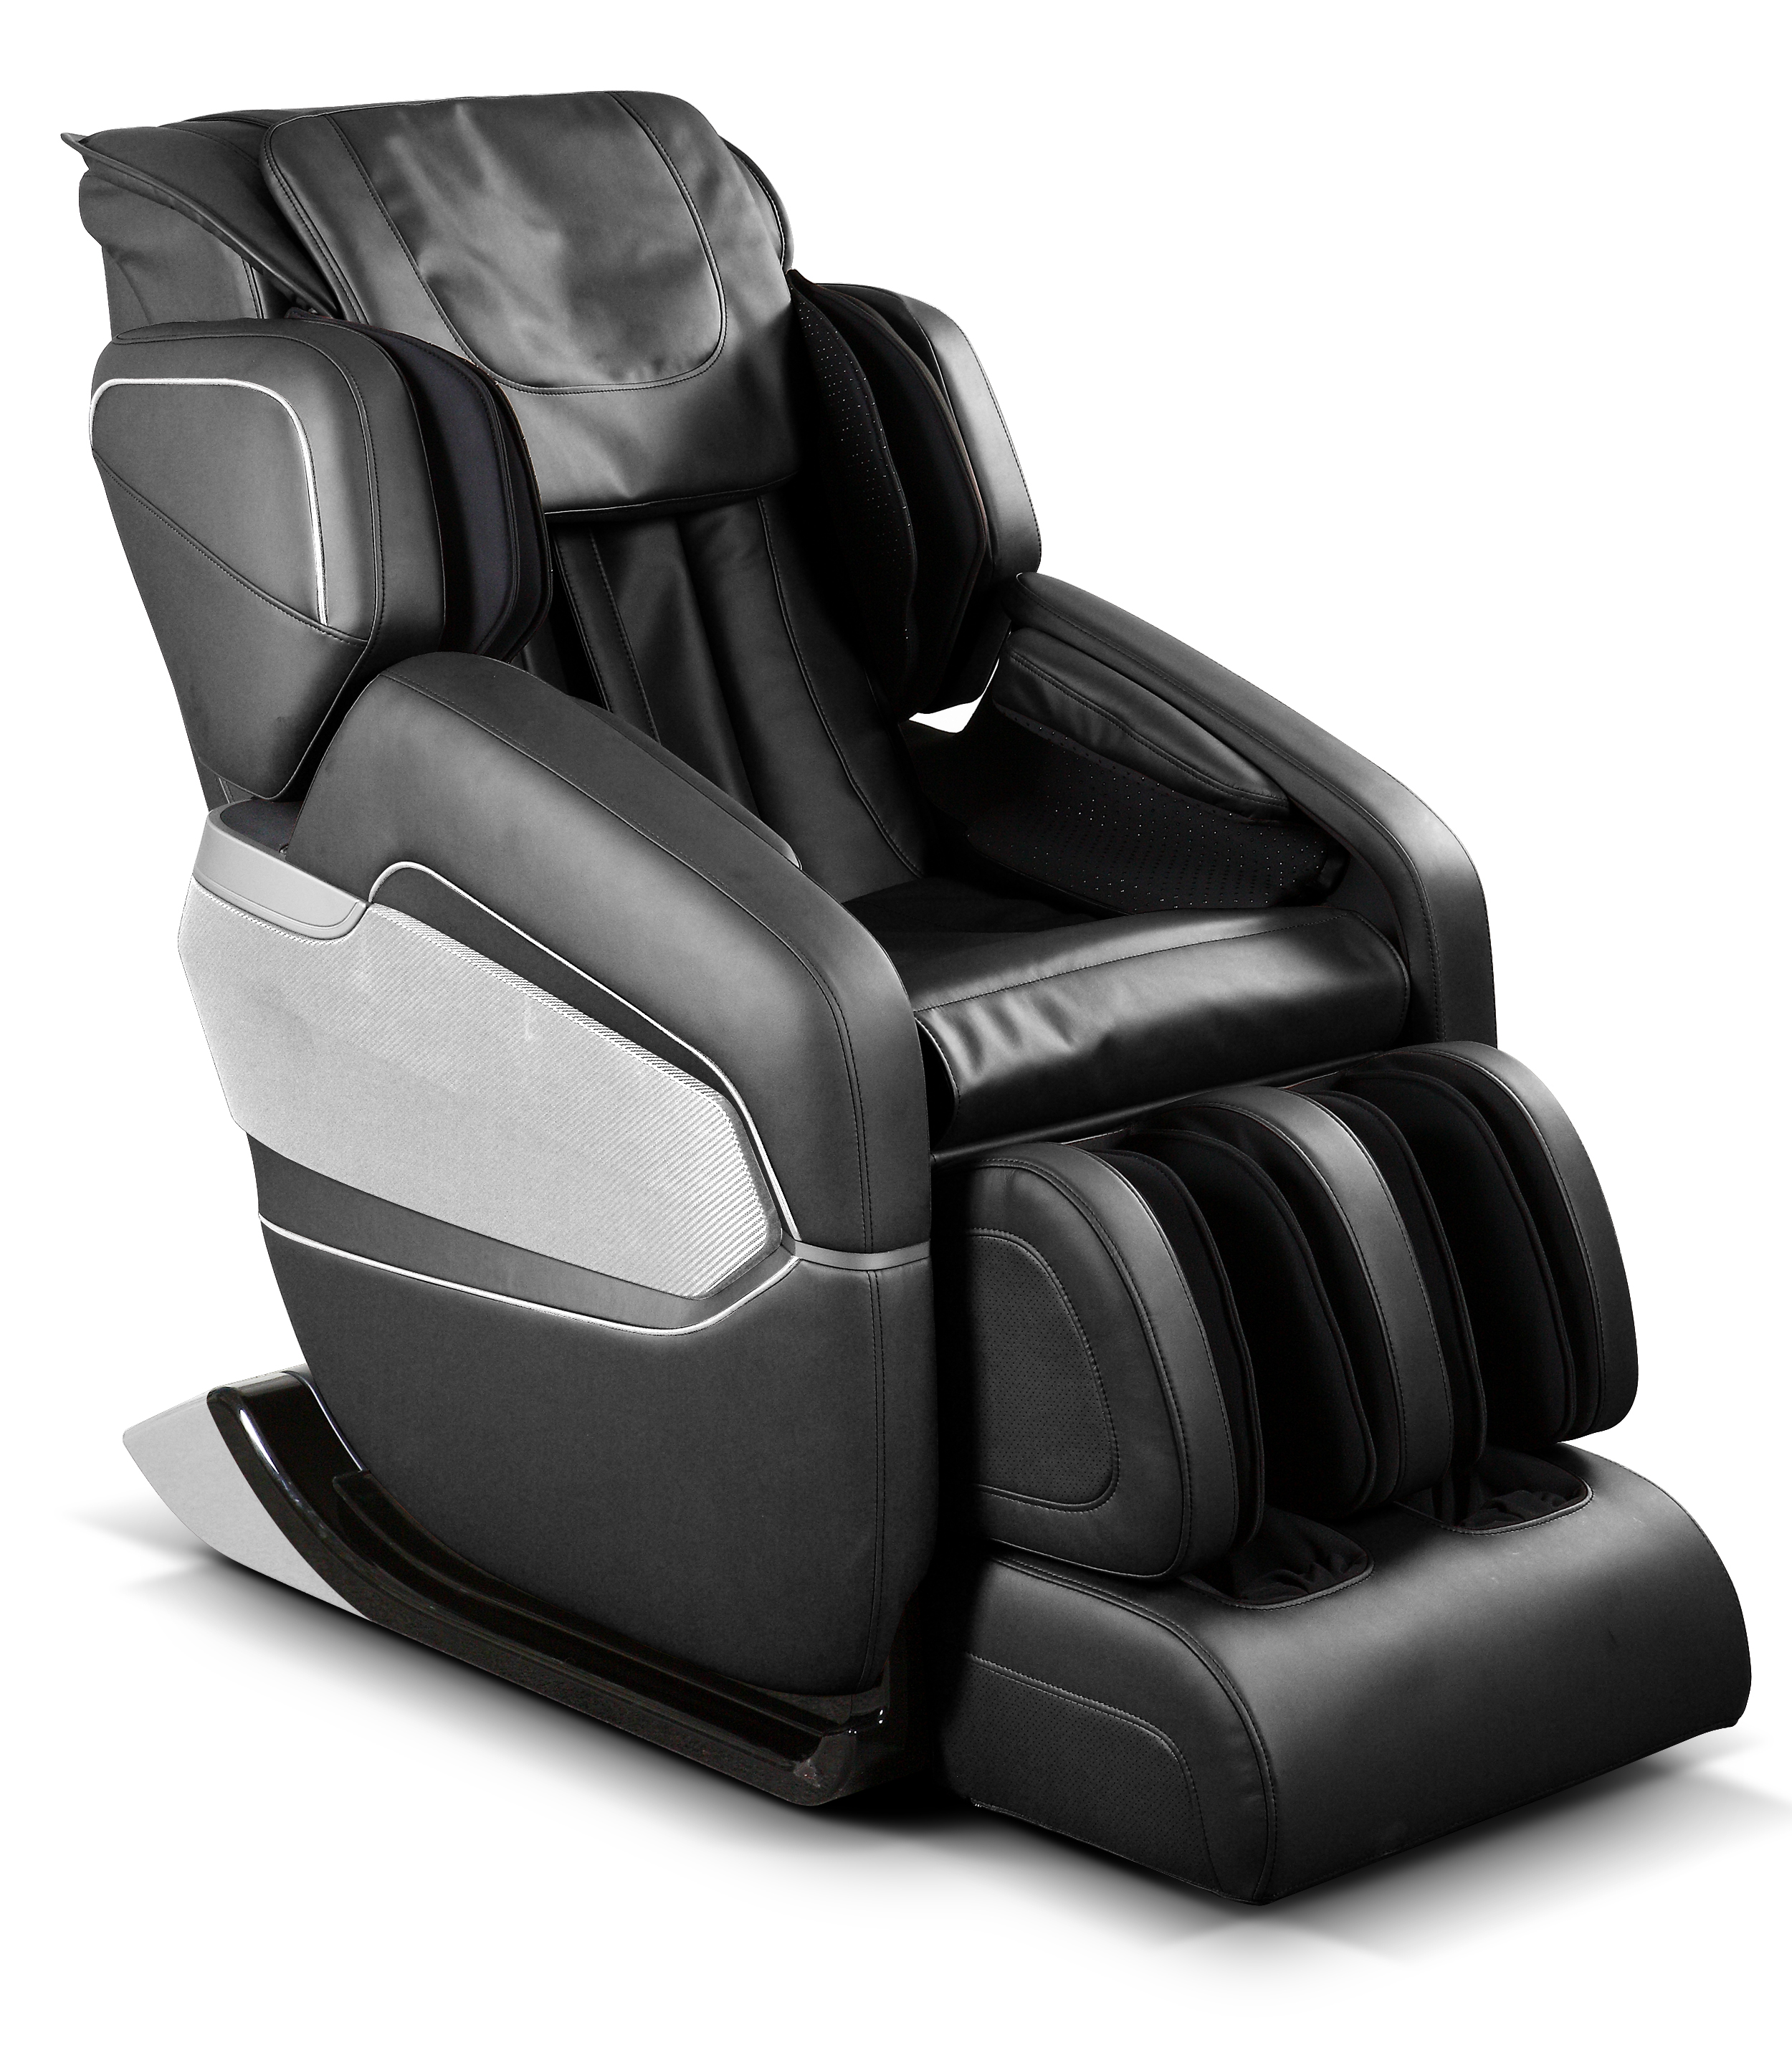 Ultimate L Massage Chair II